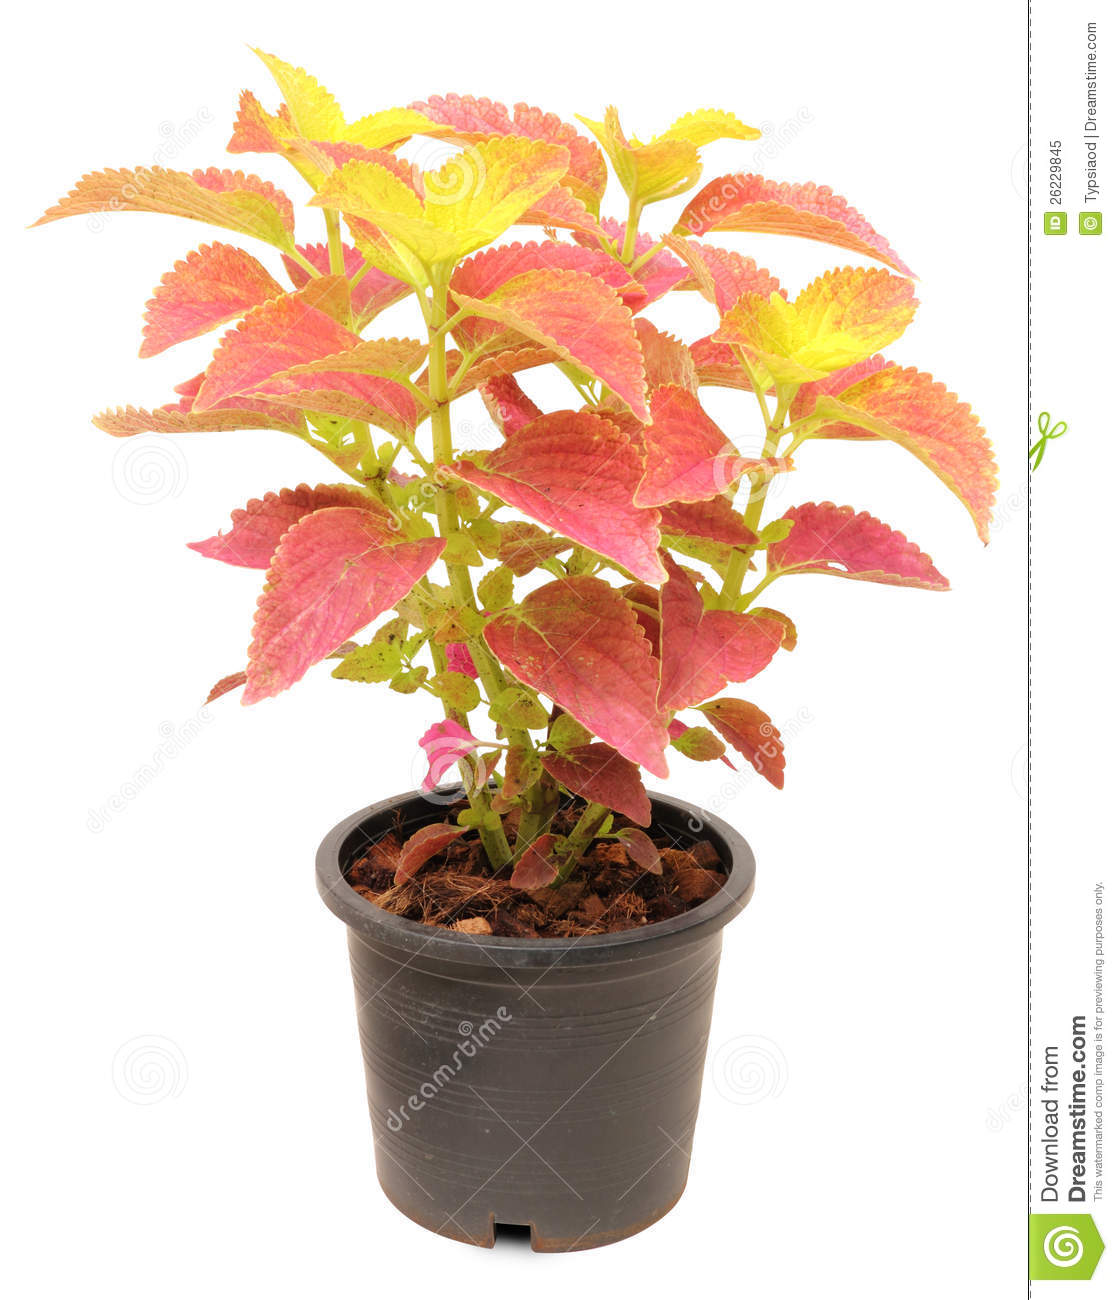 Coleus in a pot royalty free stock photo image 26229845 - Seven tricks for healthier potted plants ...